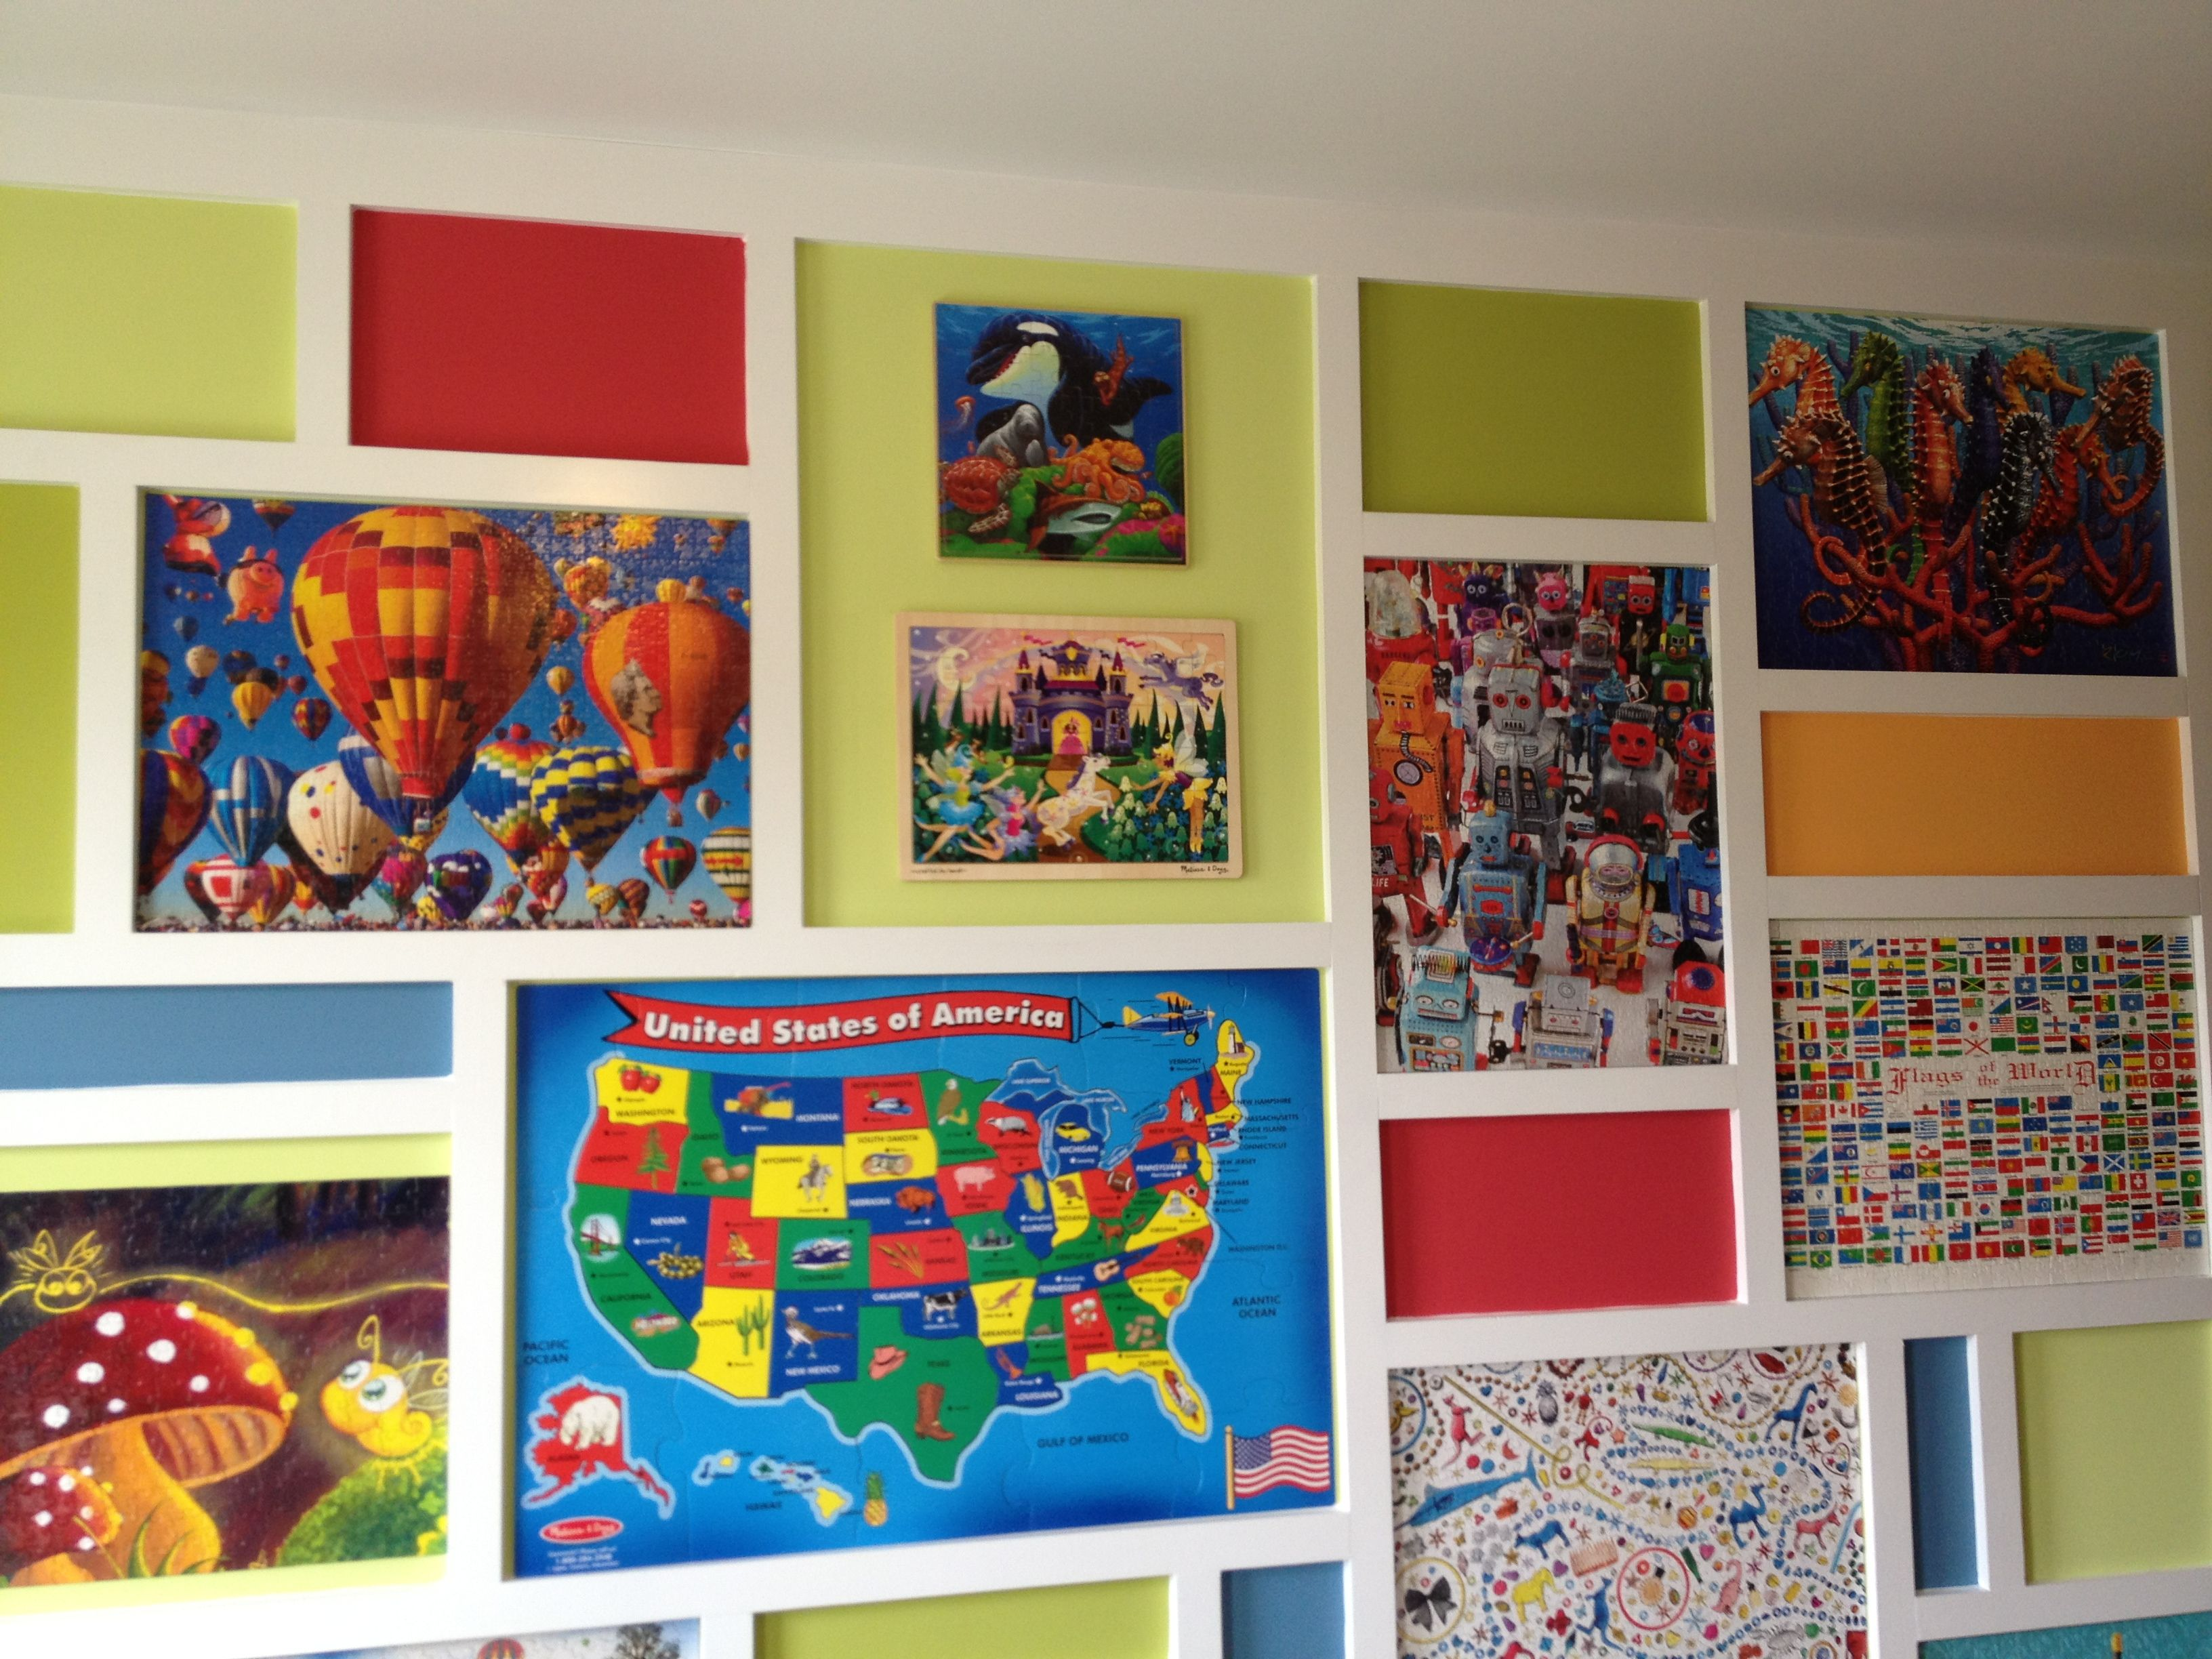 Puzzle Wall In Play Room Paint Wall A Bright Color Then Hang Puzzles And Create Frames Around Them Puzzle Crafts Puzzle Frame Art Gallery Wall